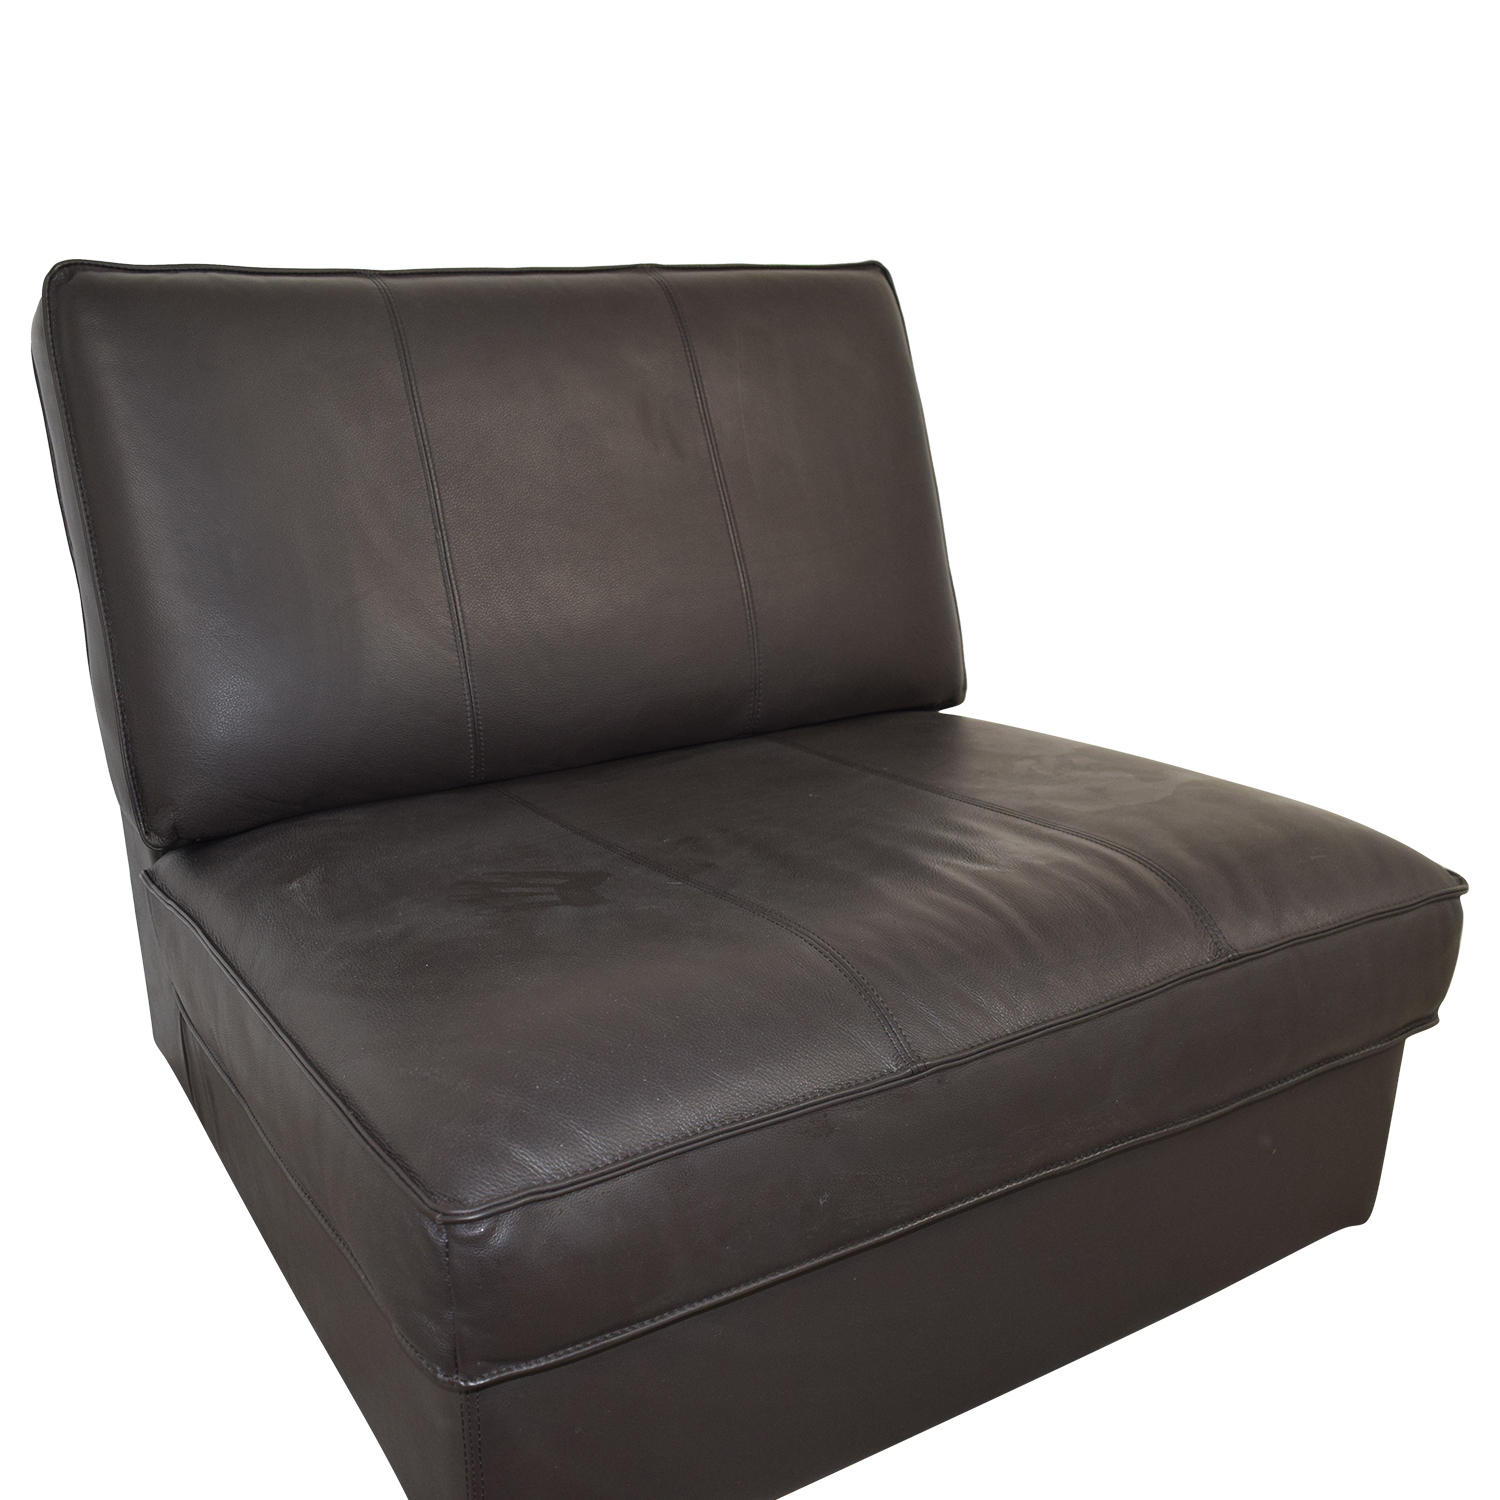 Accent Chairs Prices 90 Off Ikea Ikea Brown Leather Accent Chair Chairs